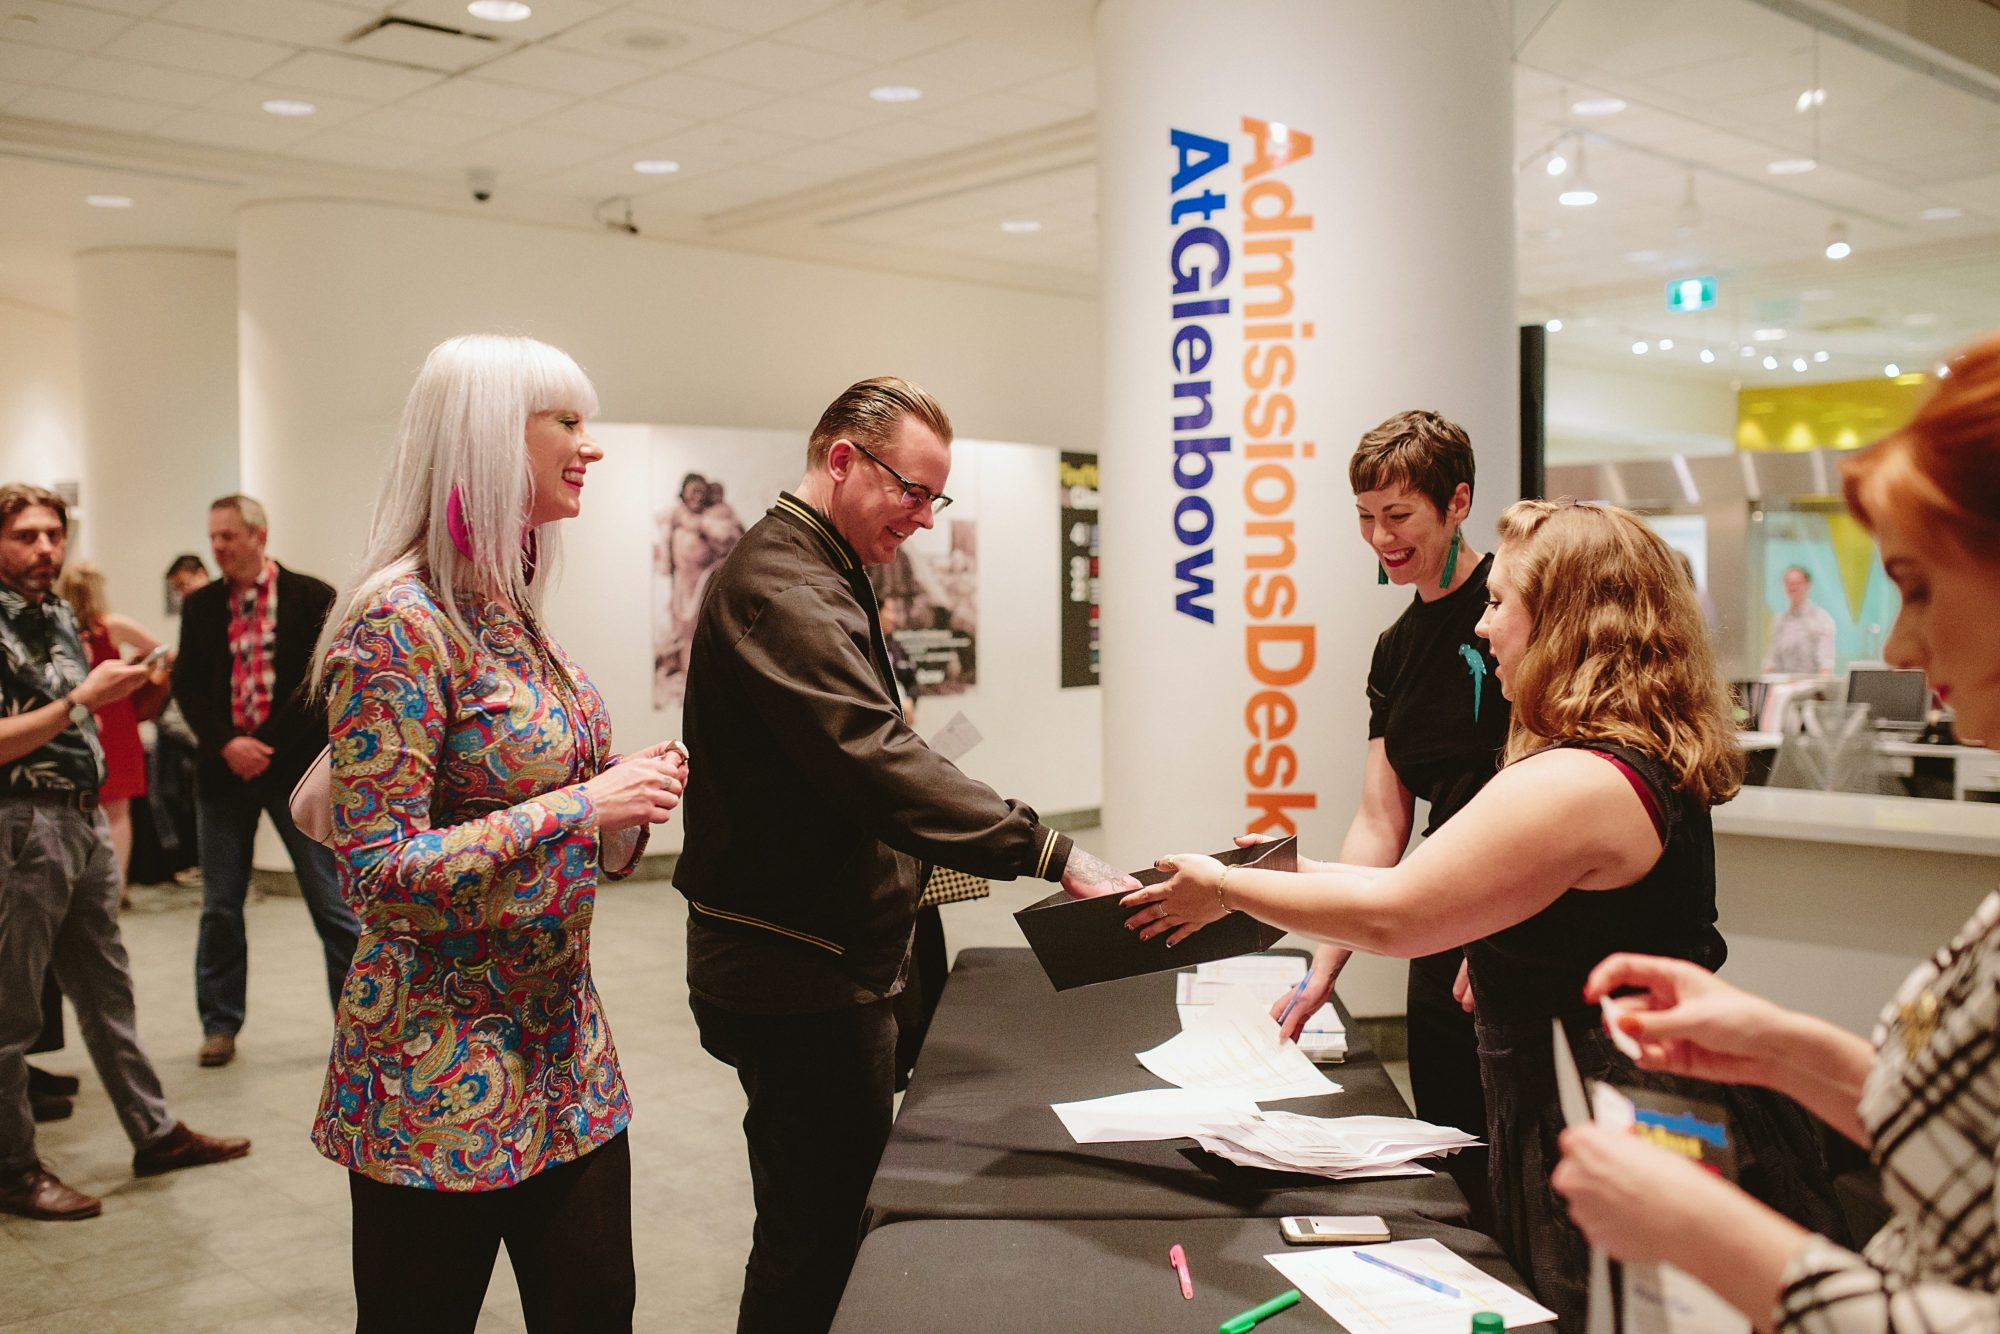 Staff assist guests in Glenbow lobby